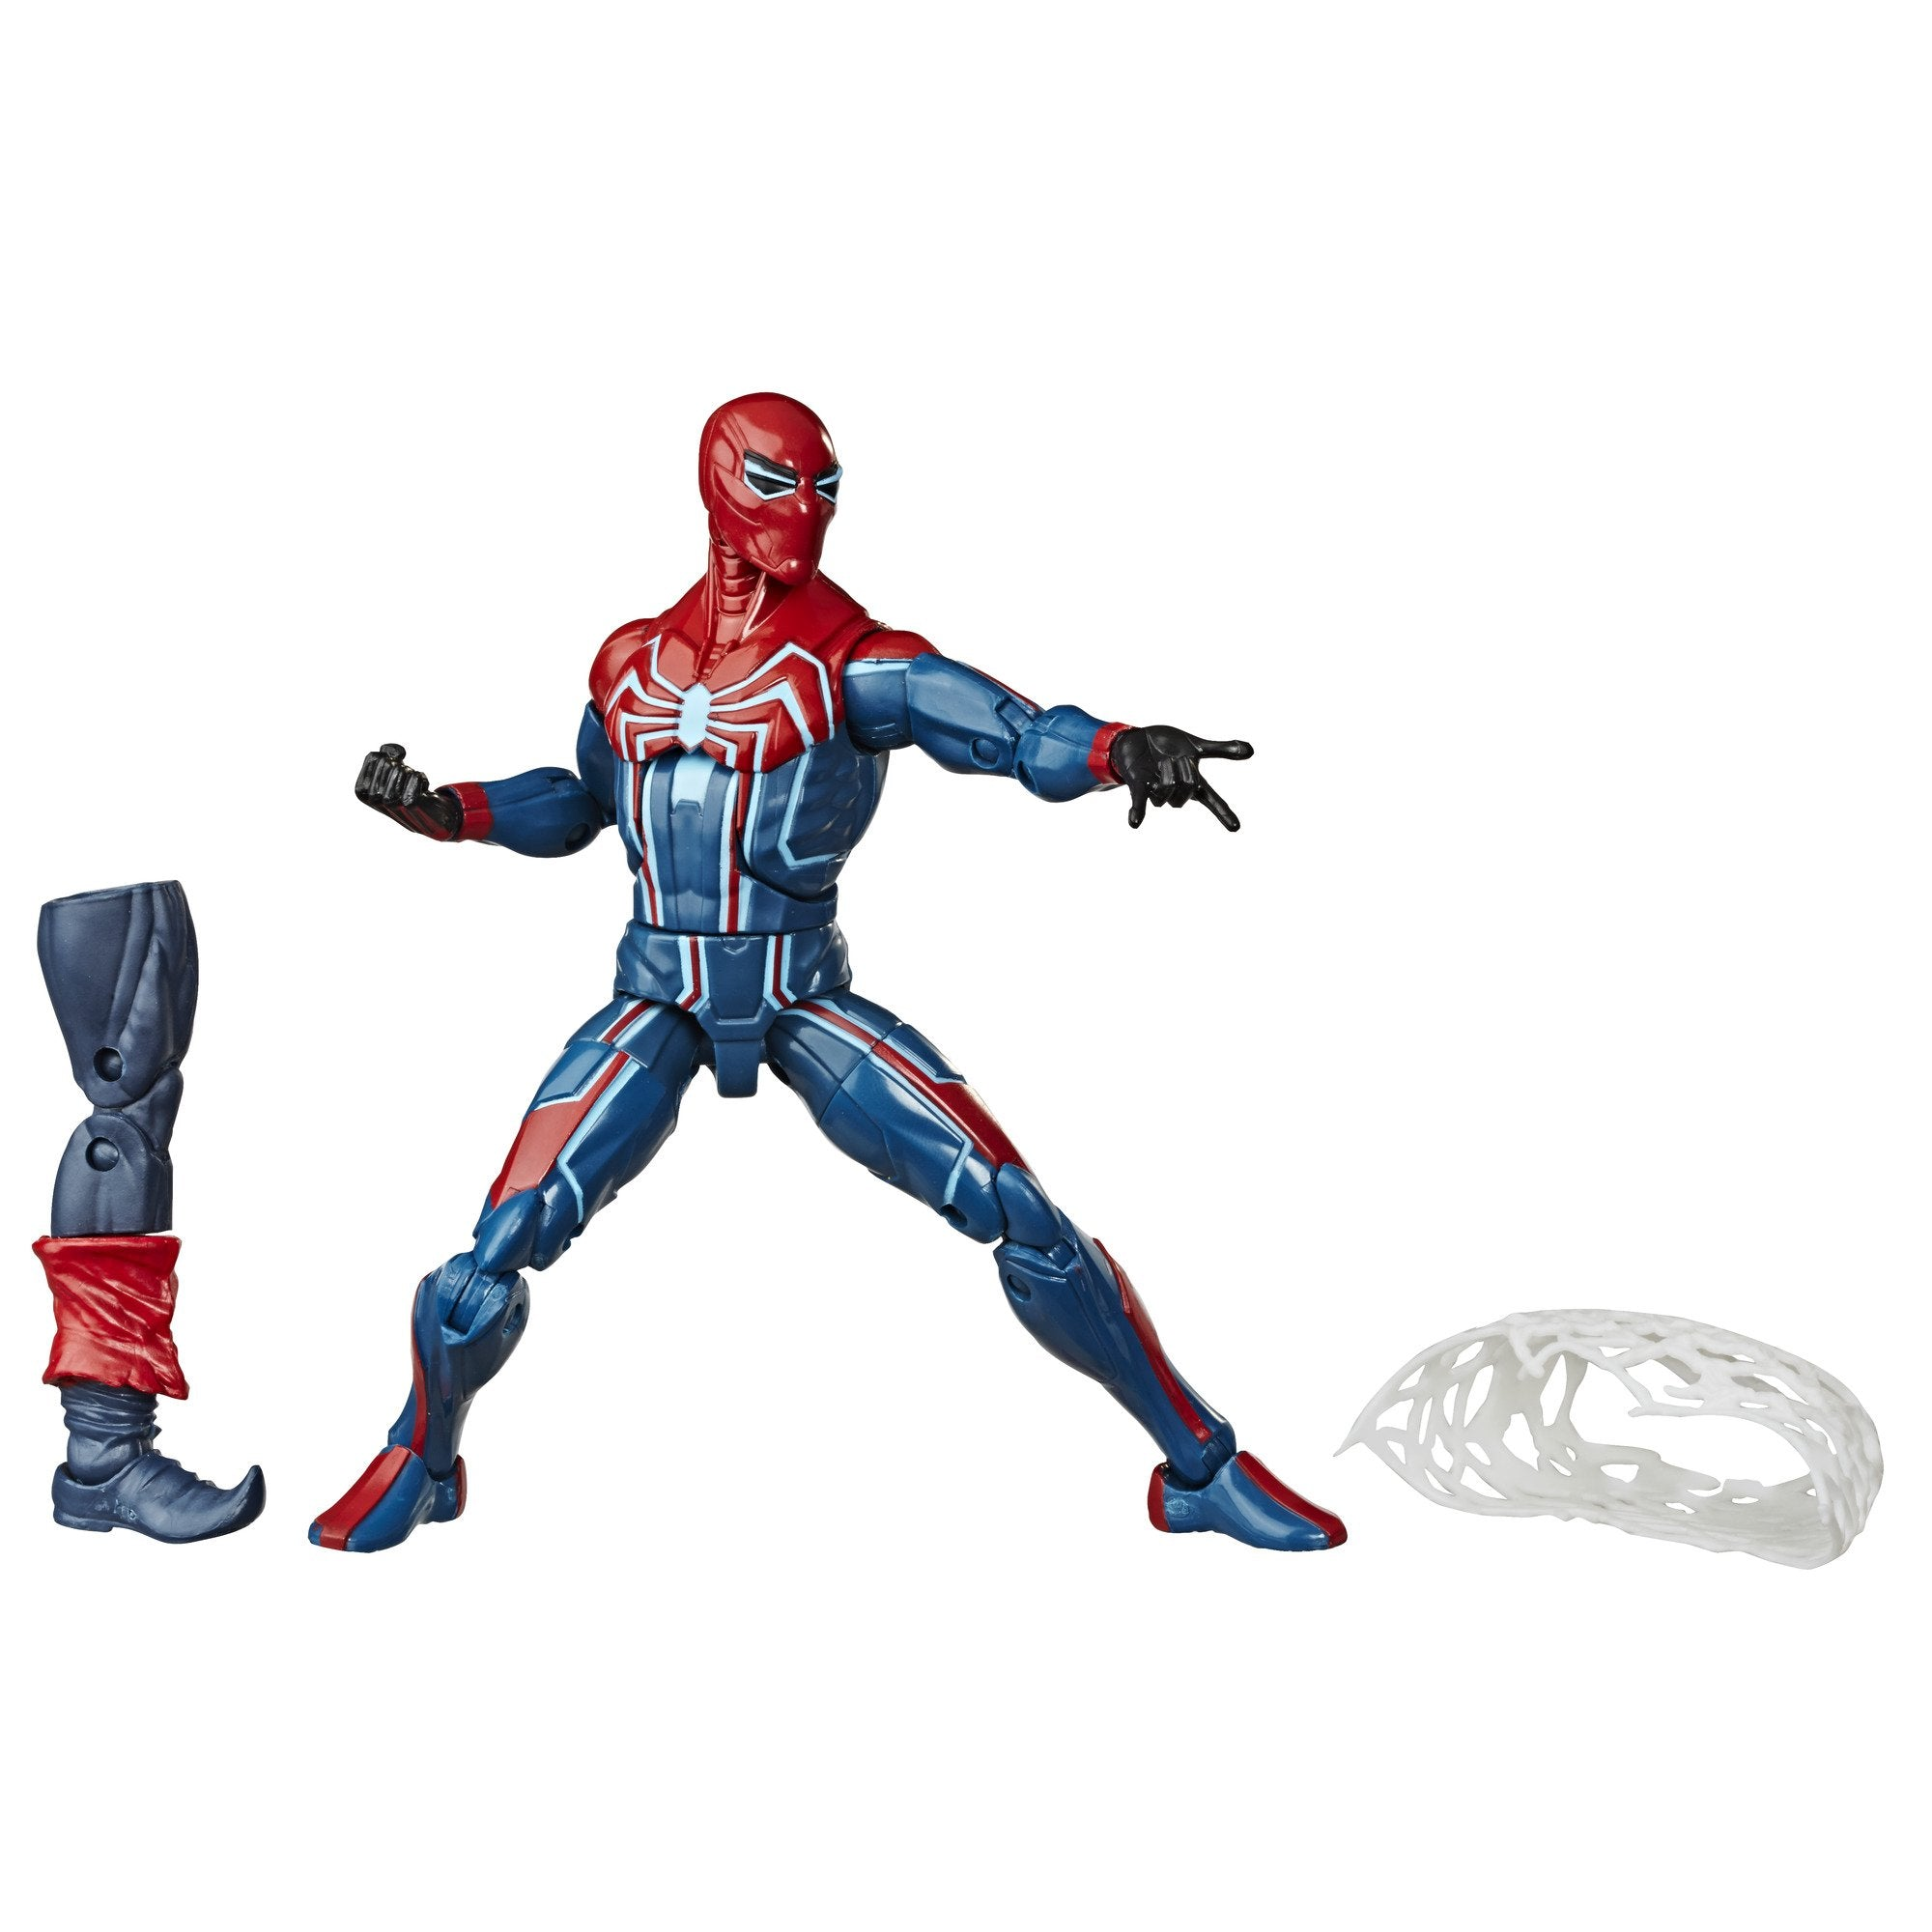 Hasbro - Marvel Legends - Marvel Gamerverse - Spider-Man (2018) - Velocity Suit